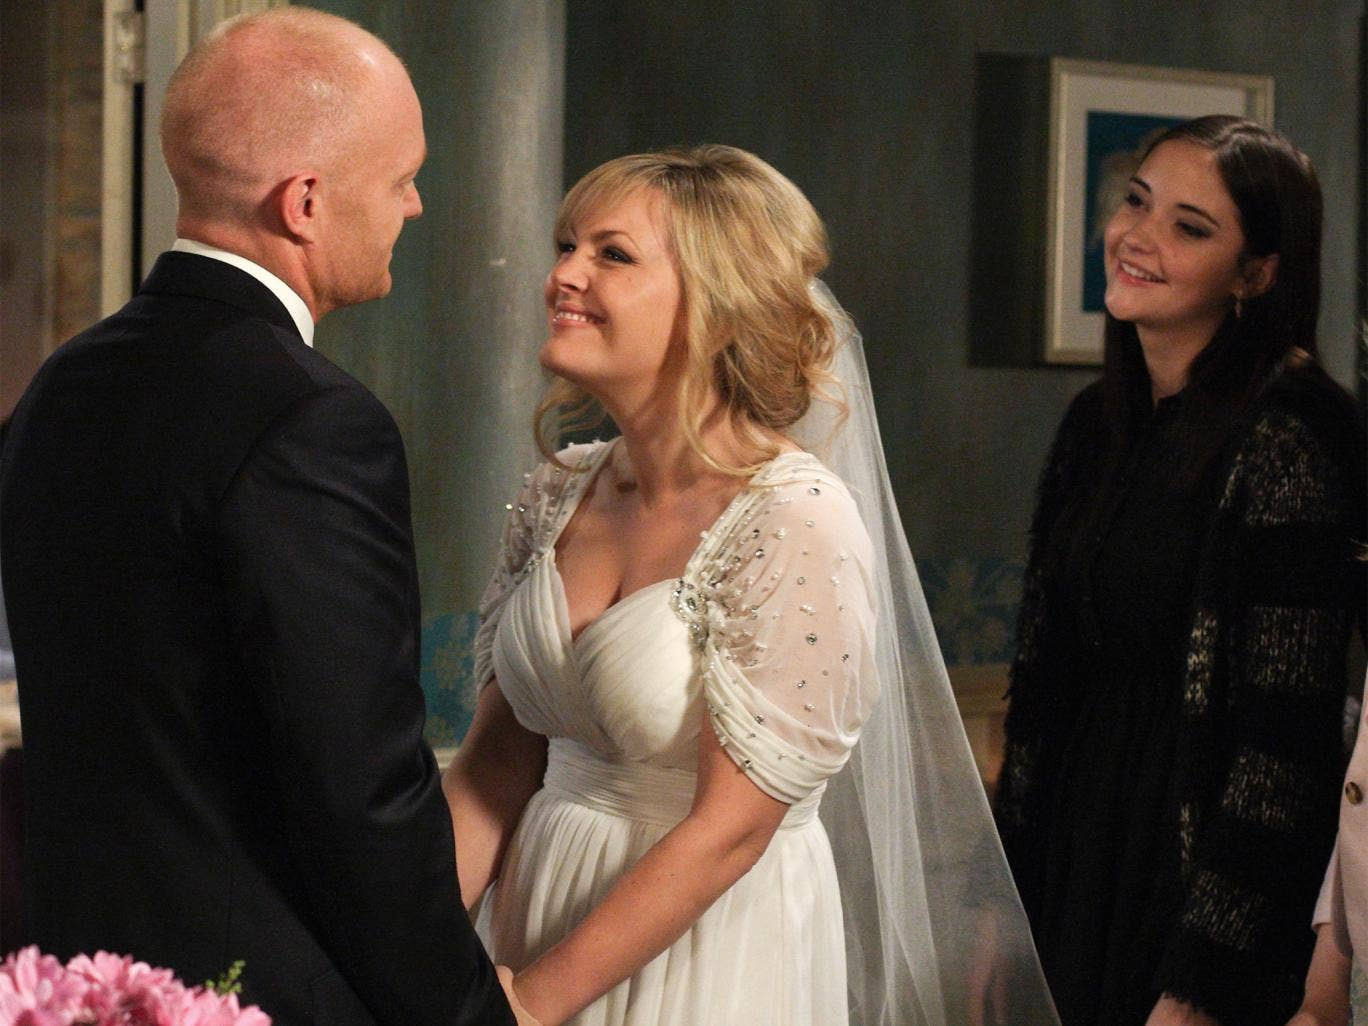 EastEnders pulled in 9.4m viewers on Christmas Day